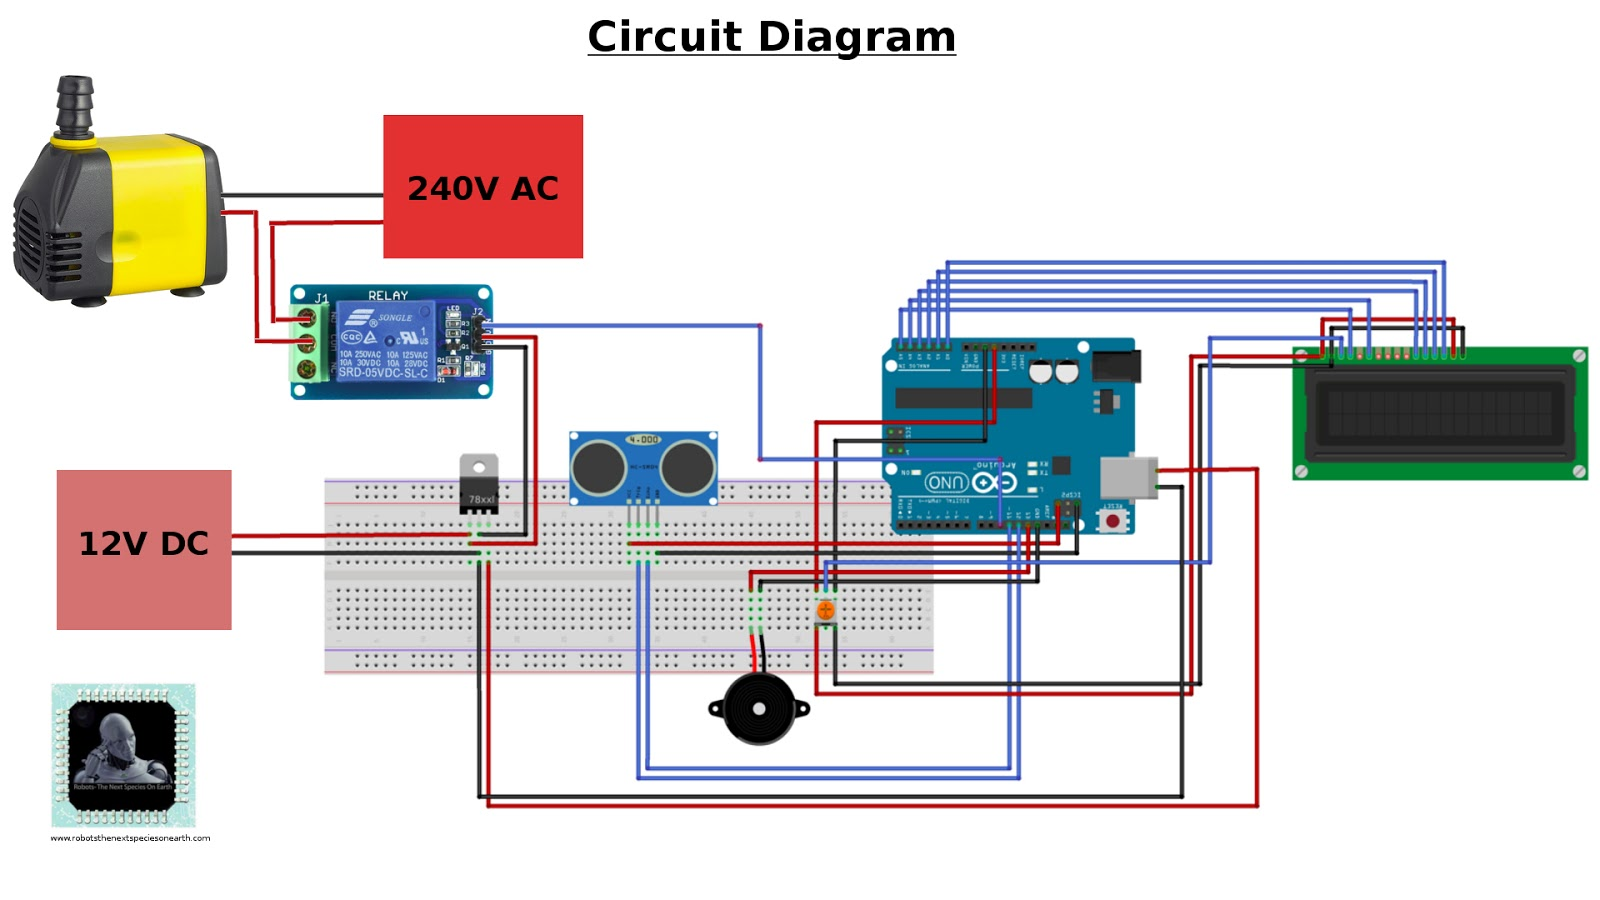 hight resolution of let s move to the circuit diagram